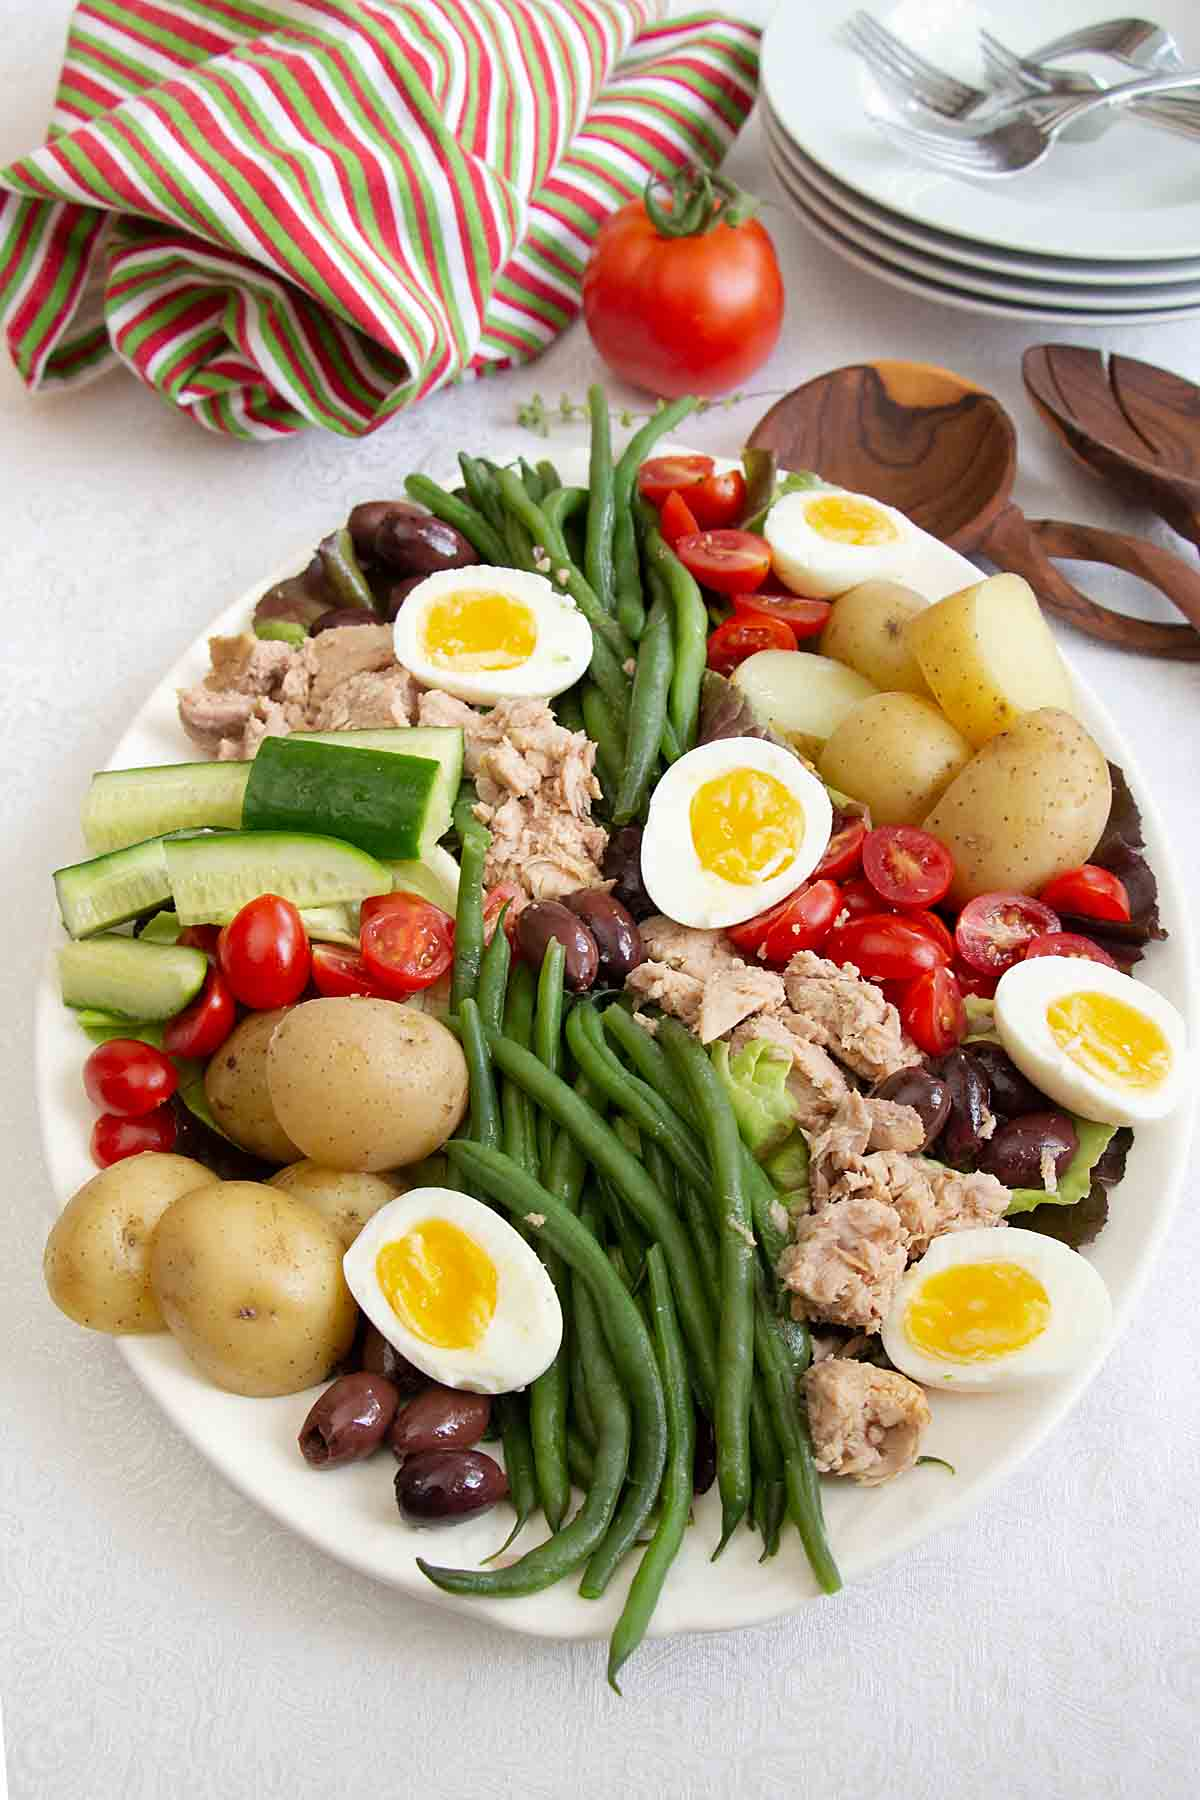 Tender butter lettuce topped with tuna, green beans, tomatoes and more, the Nicoise Salad is as healthy as it is tasty!